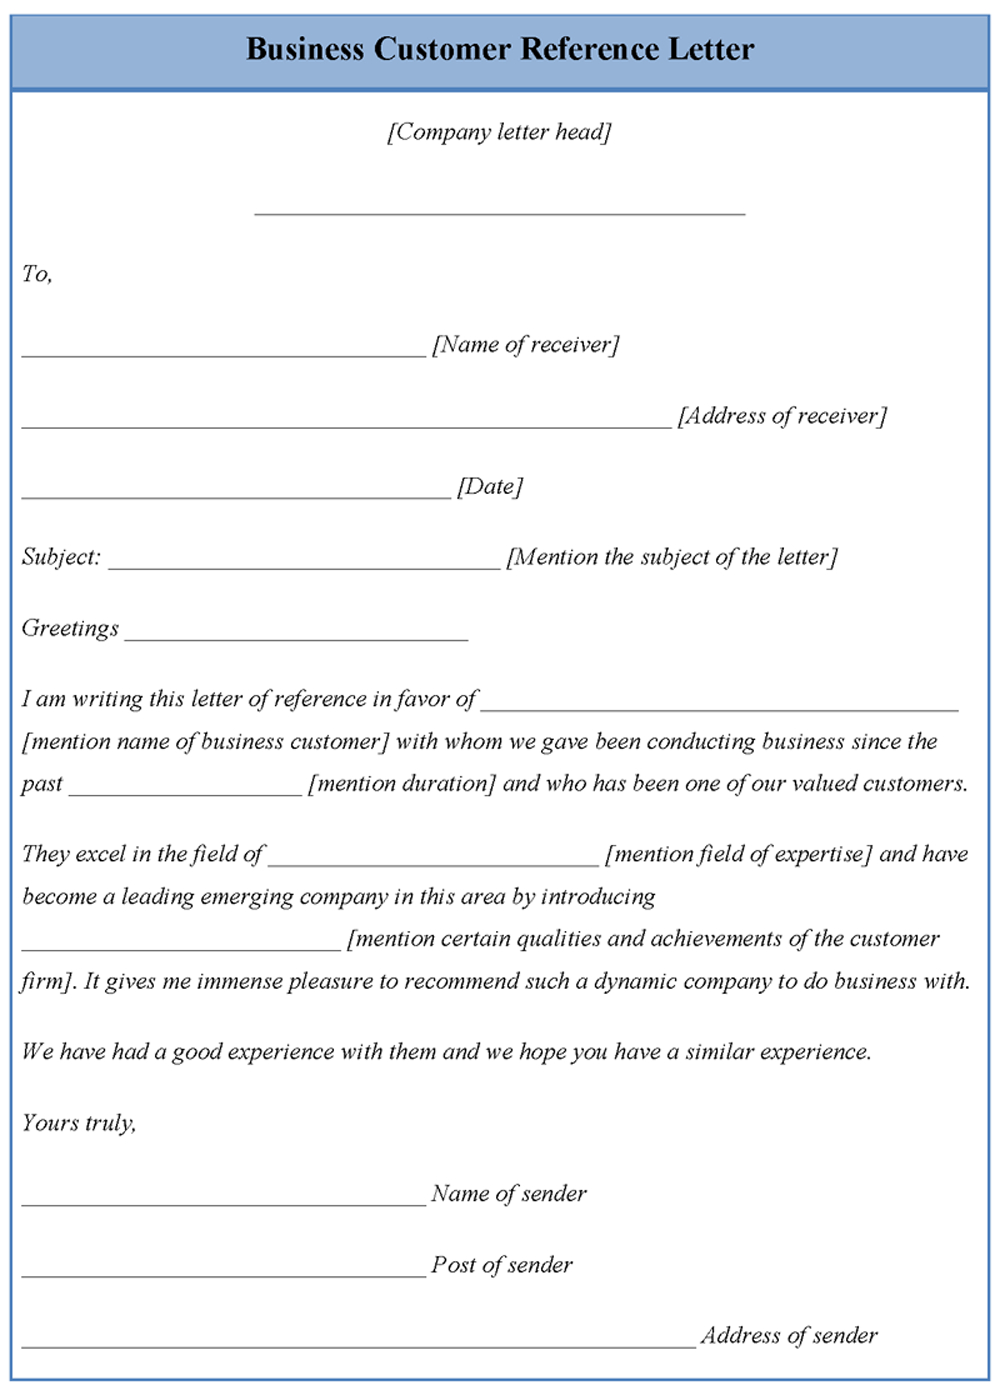 Customer Reference Letter Template - Business Letter Of Reference Template